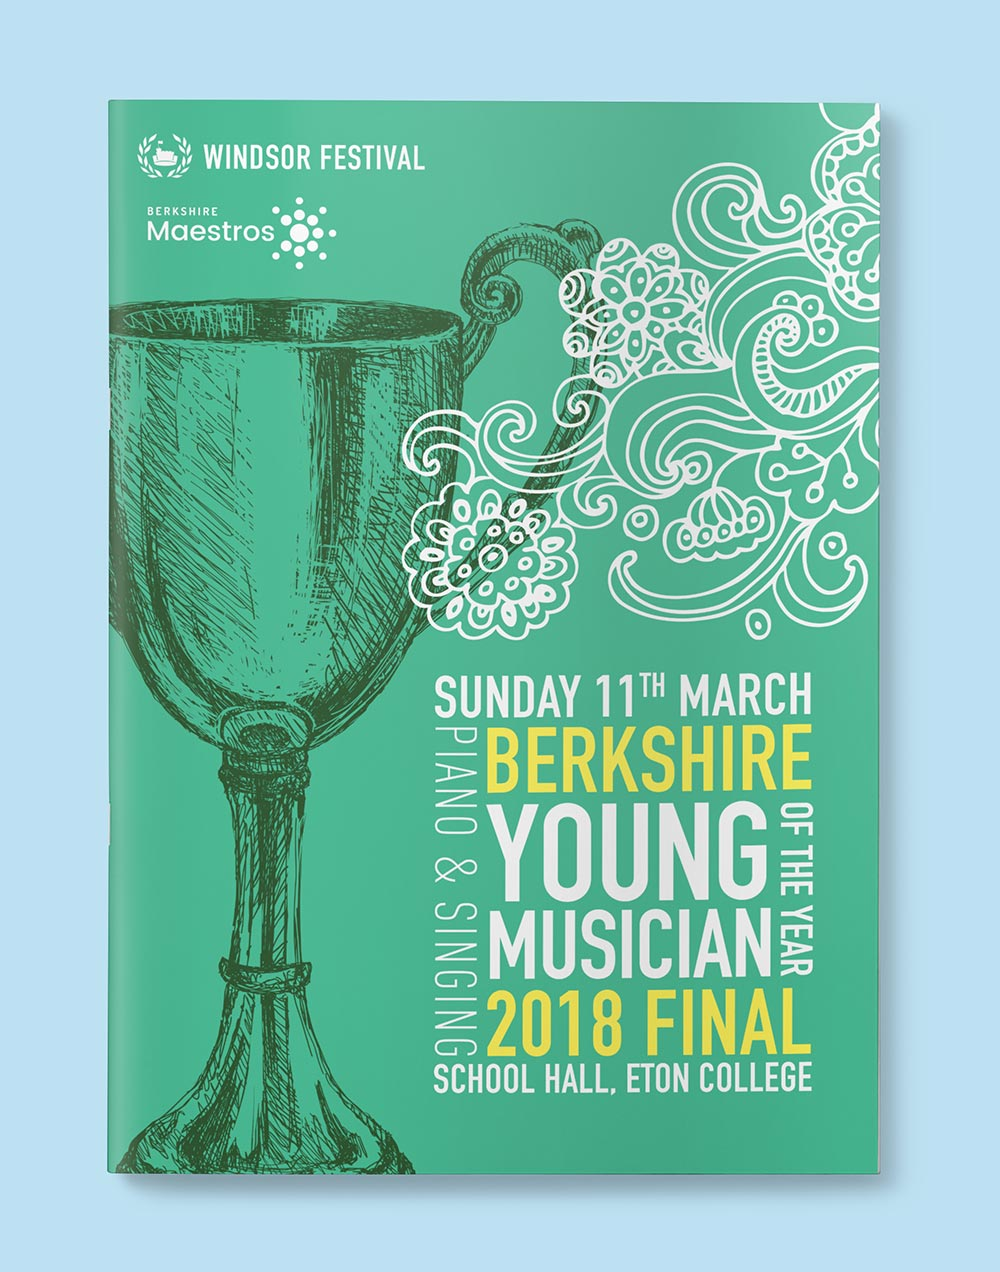 Berkshire young musician of the year final poster